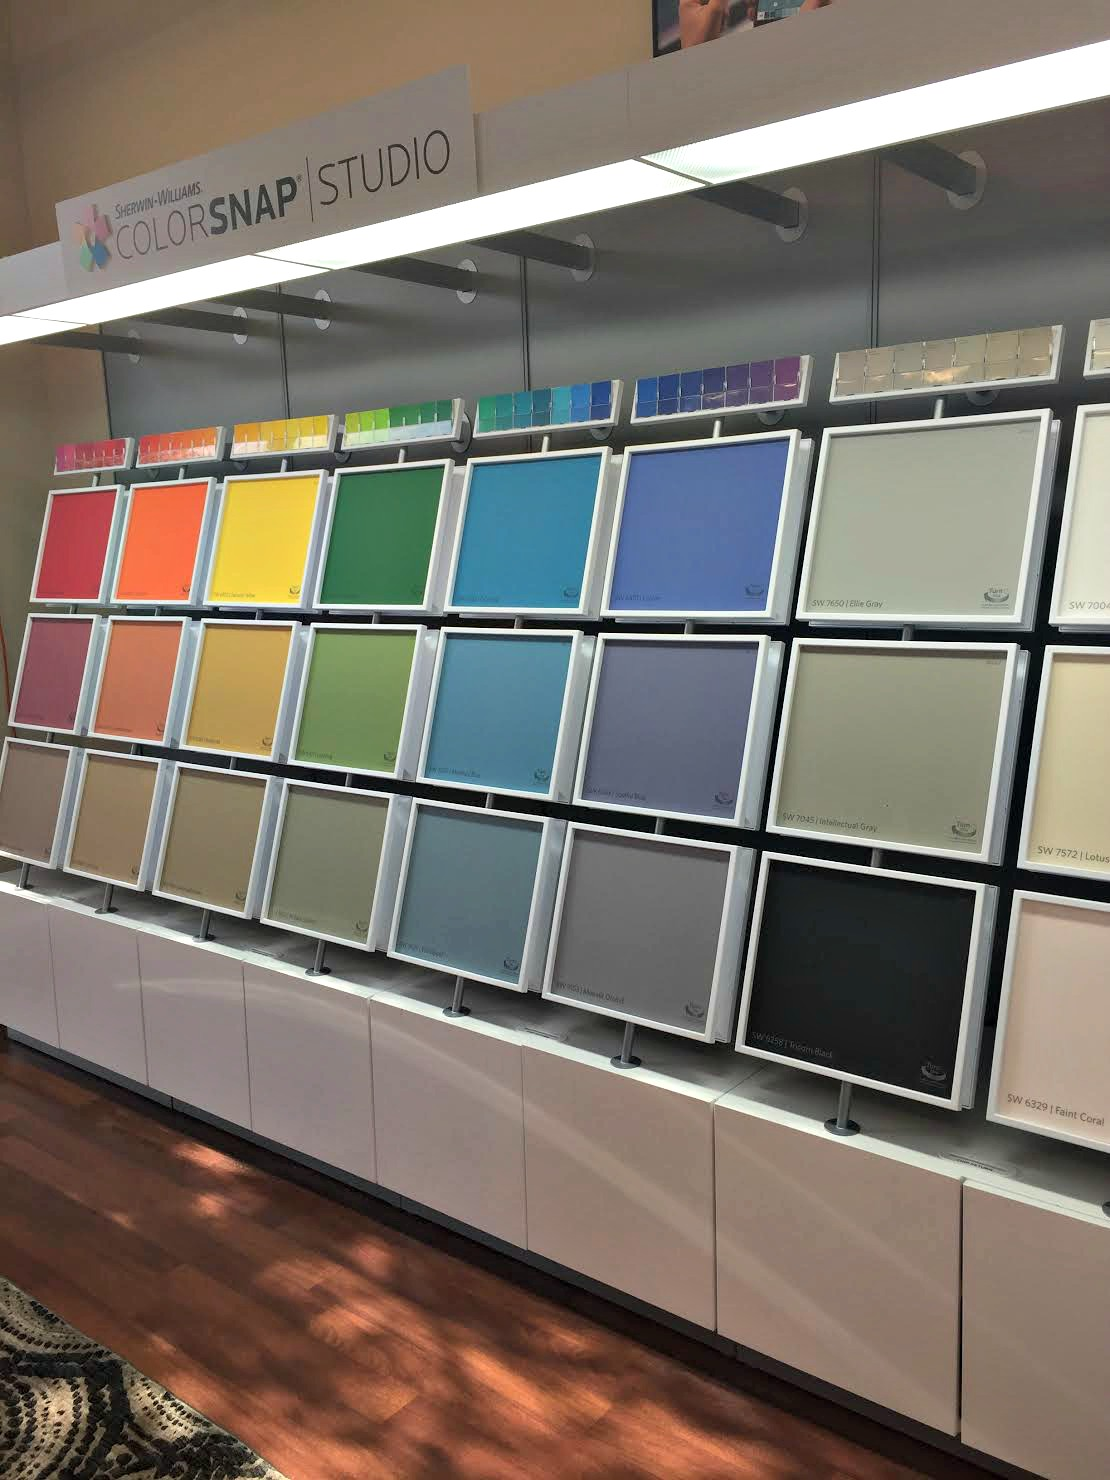 Picking Out Paint Colors With The Colorsnap System At Sherwin Williams